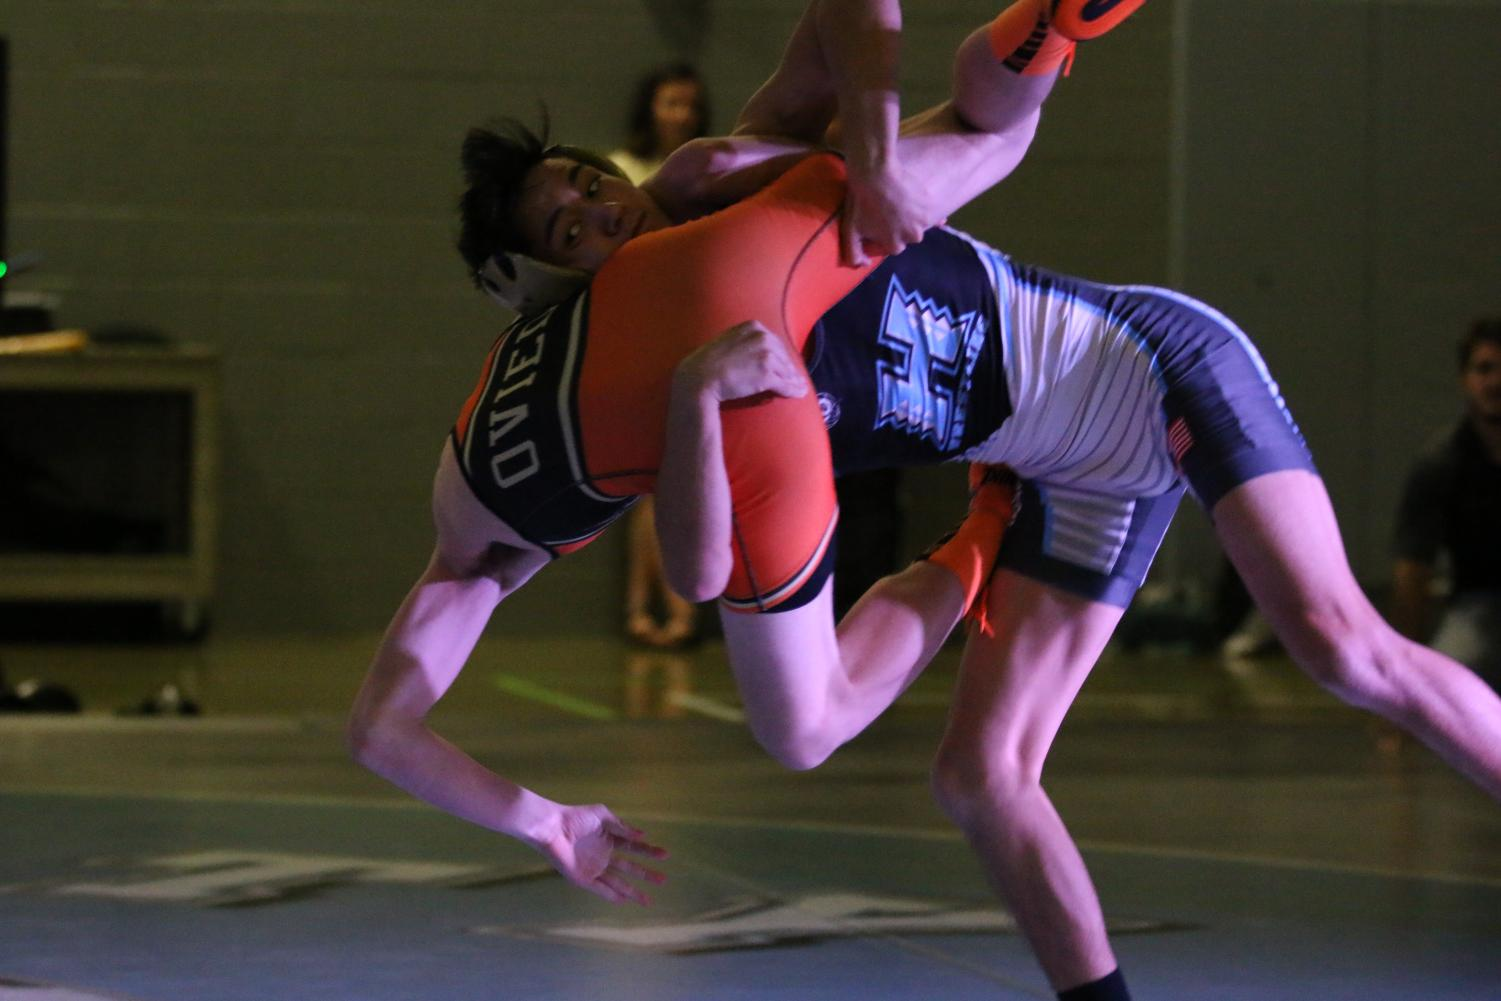 Senior Ryan Rowland on his way down with his opponent, from Oviedo. He would slam and pin his opponent for the win.